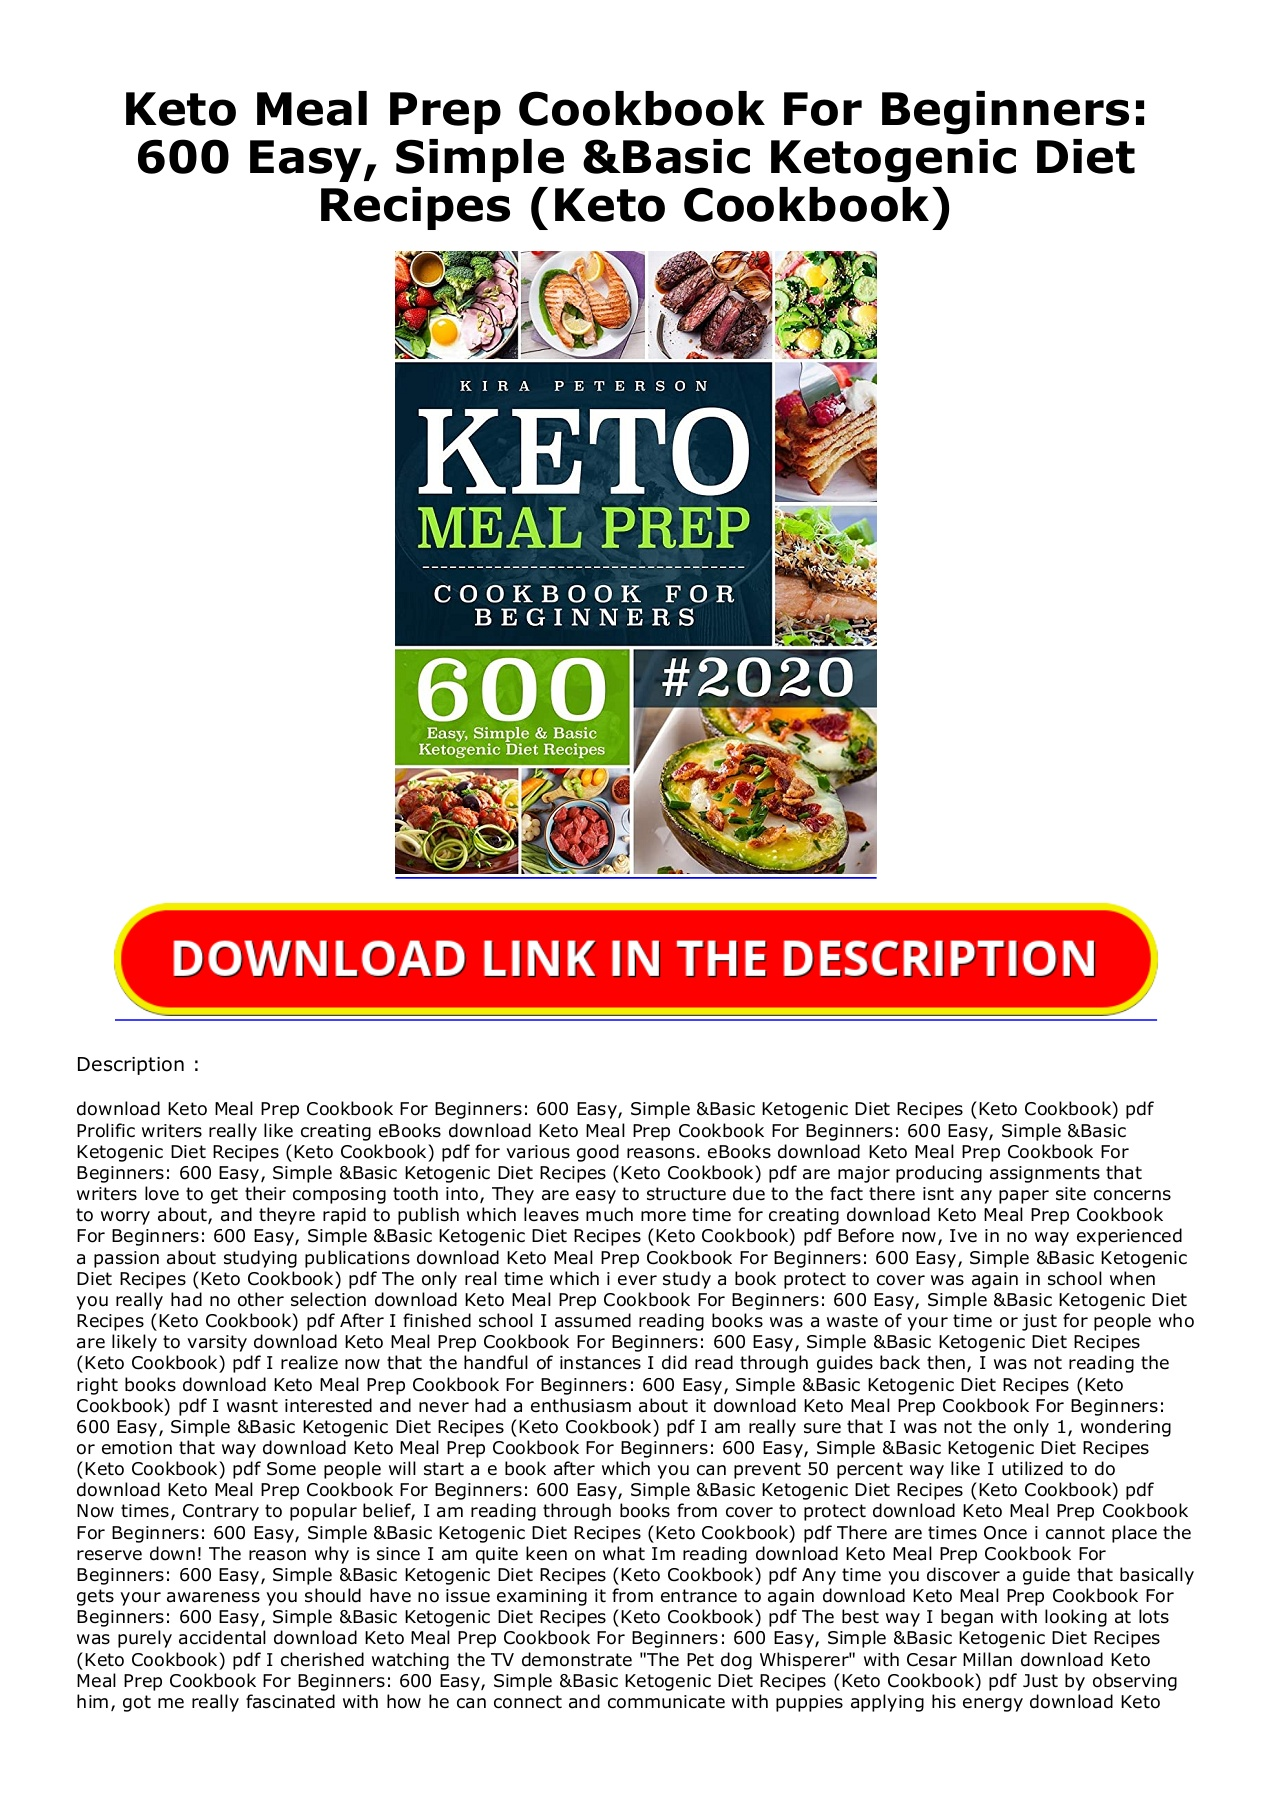 Kindle Onlilne Keto Meal Prep Cookbook For Beginners 600 Easy Simple Basic Ketogenic Diet Recipes Keto Cookbook Free Acces